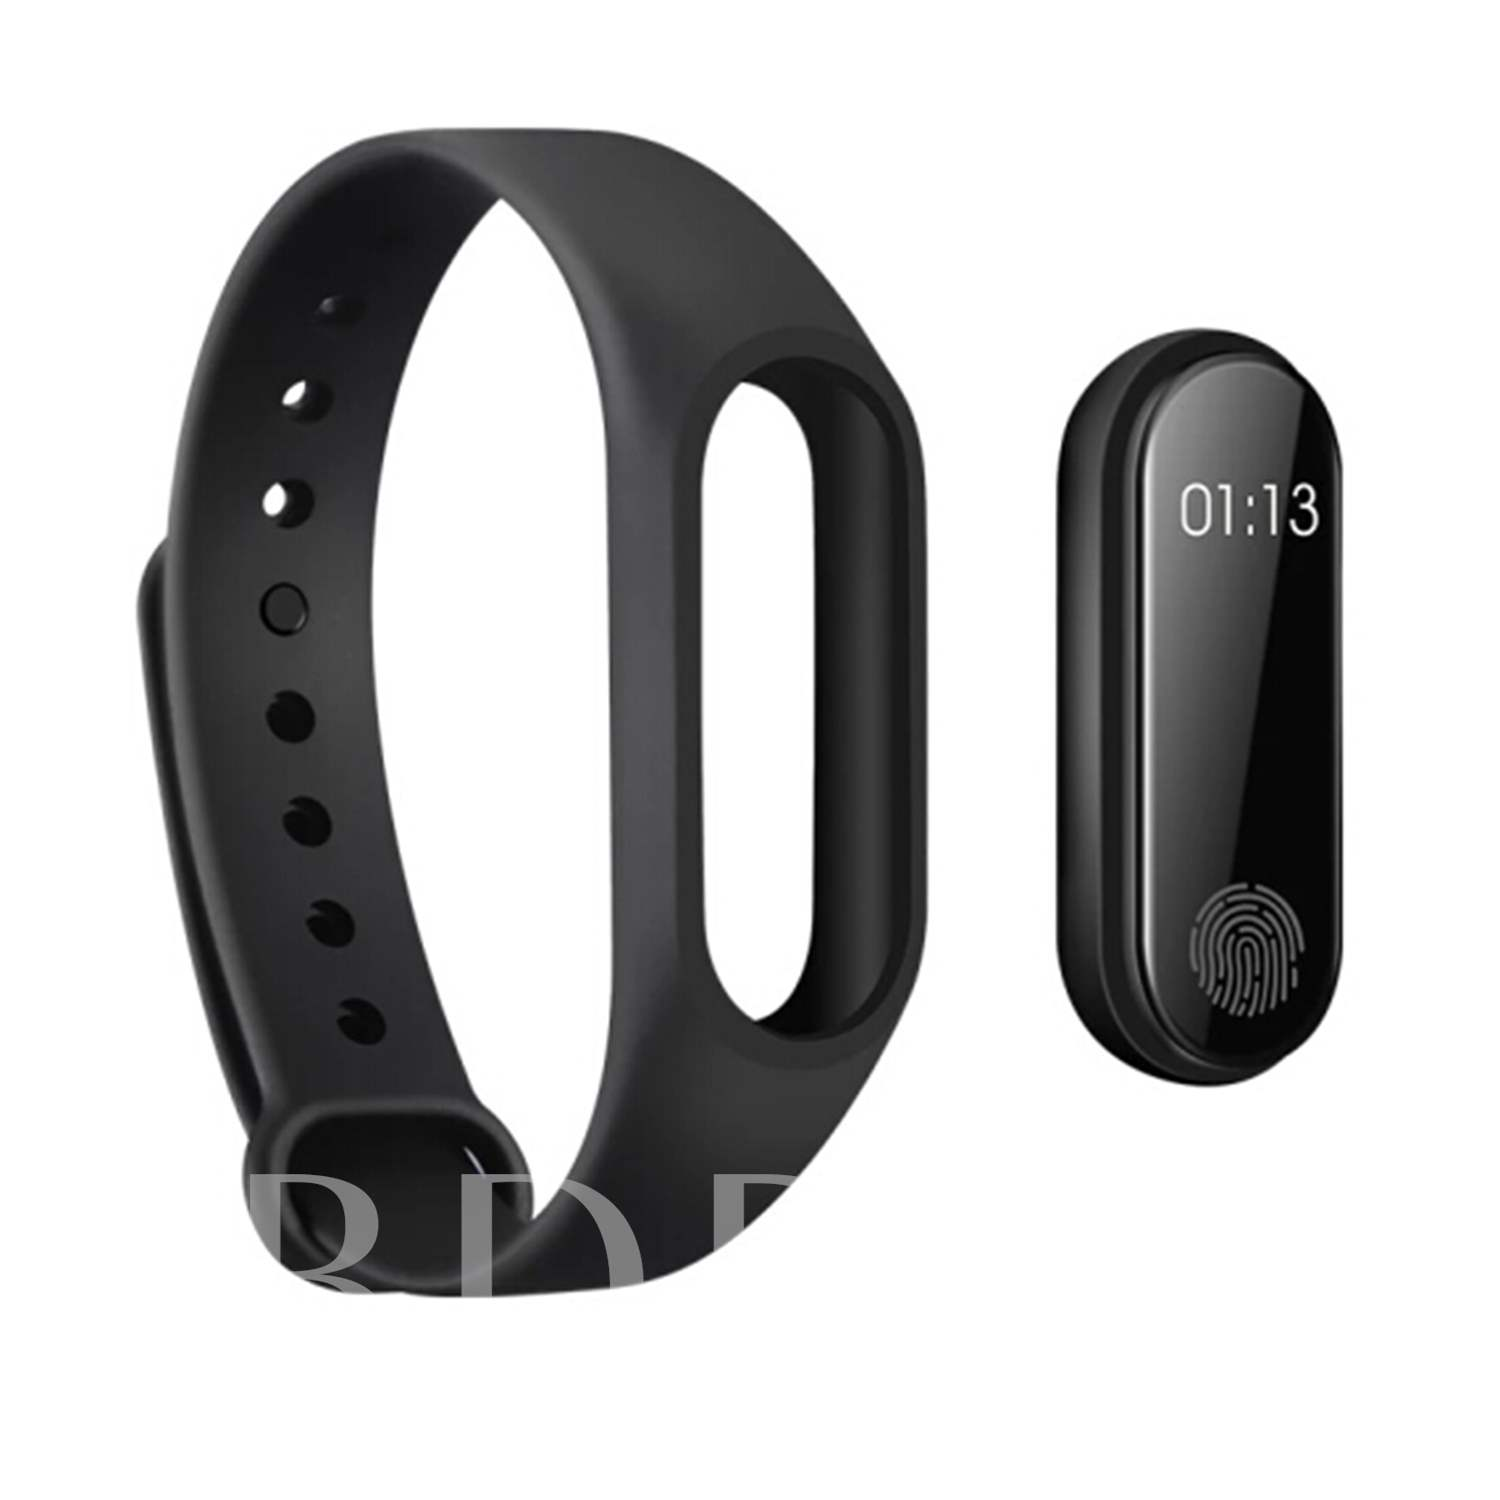 M2 Band Smart Watch Waterproof Heart Rate Monitor for Apple Android Mi Phones